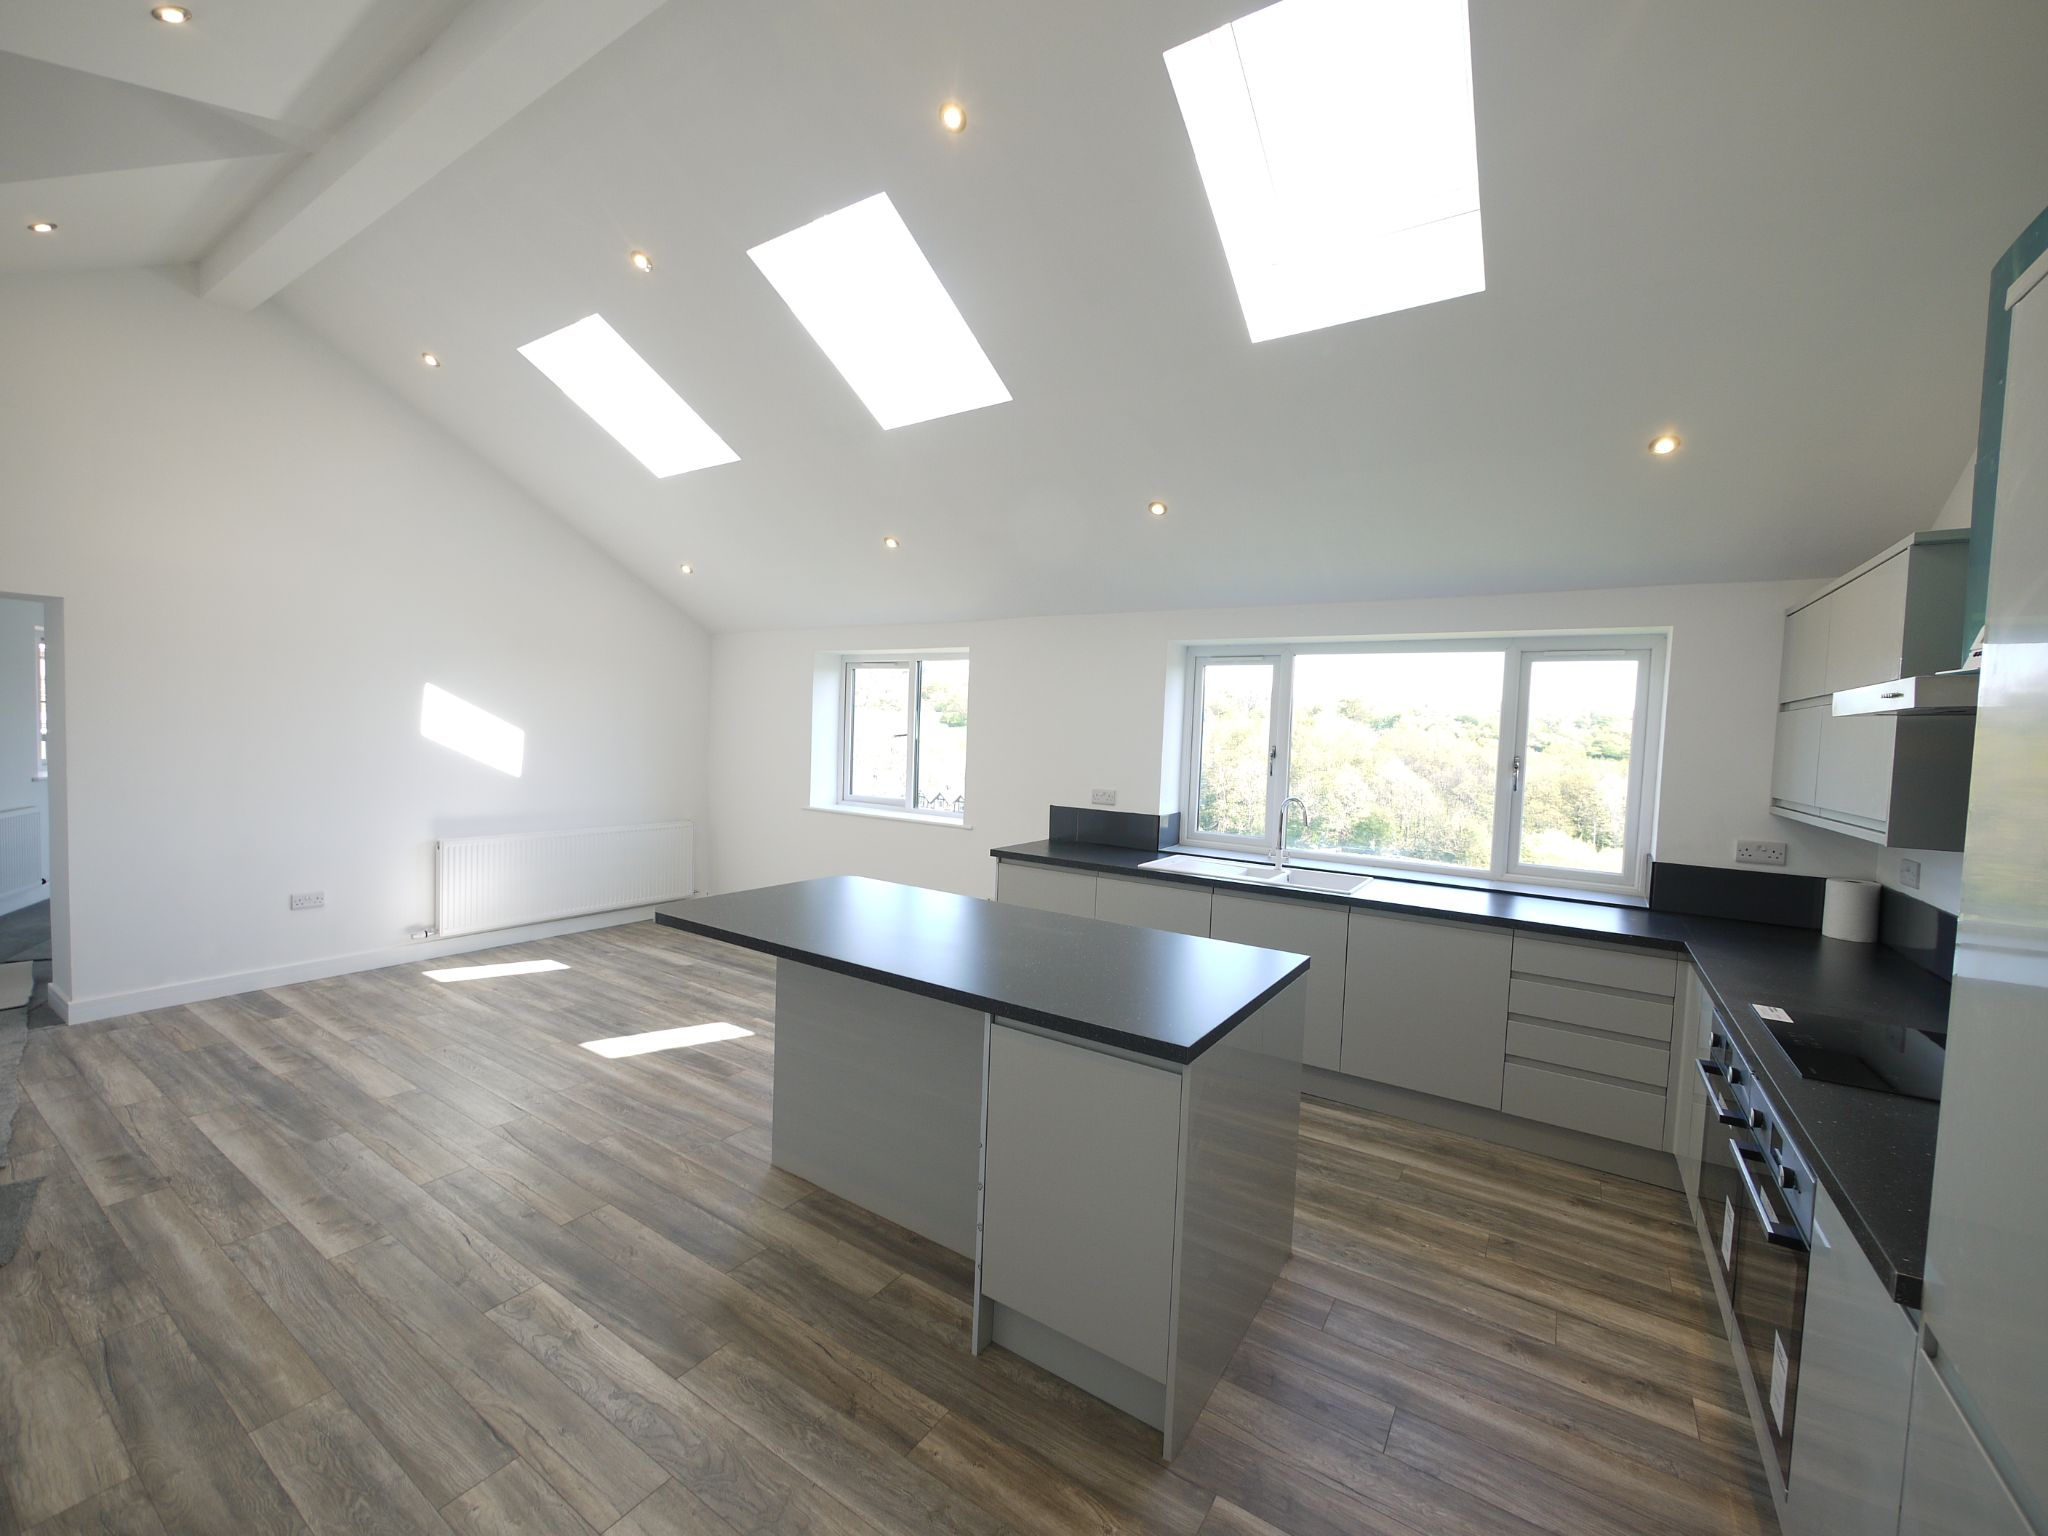 3 bedroom detached house For Sale in Brighouse - Dining Kit 3.